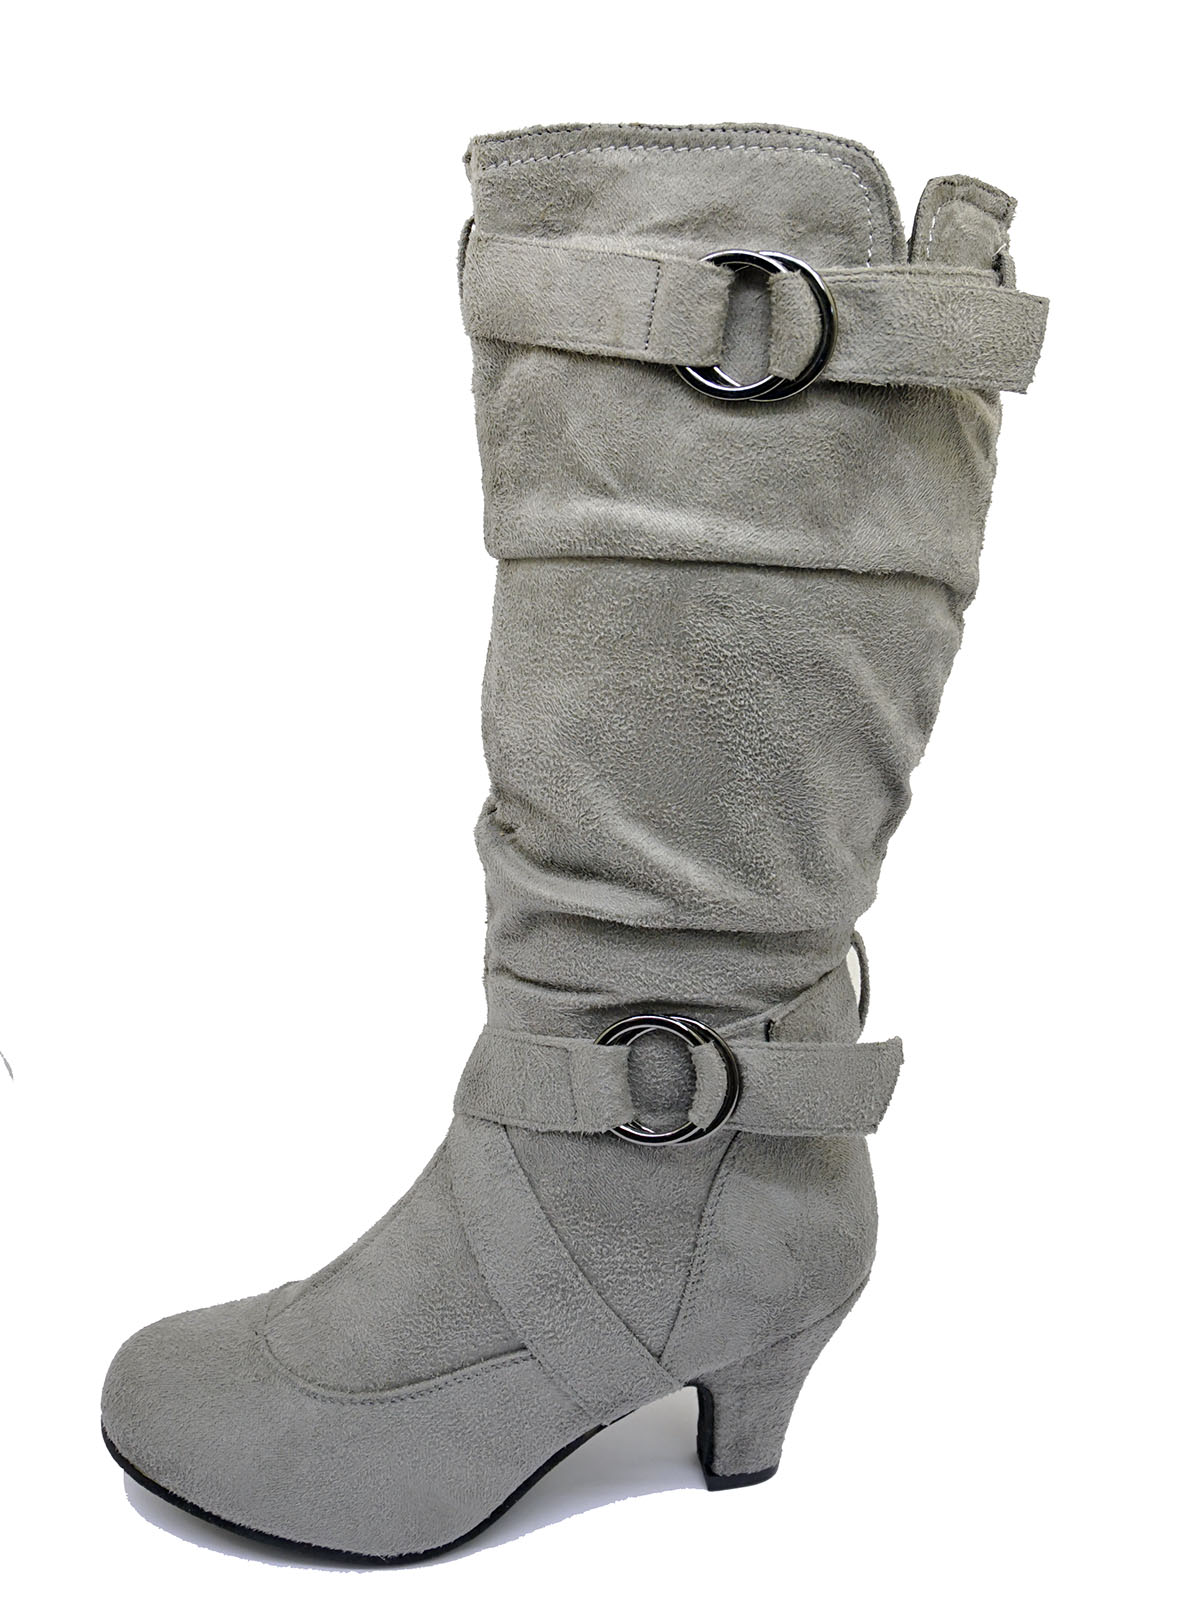 LADIES-GREY-ZIP-UP-BIKER-SLOUCH-RUCHED-TALL-KNEE-CALF-LOW-HEEL-BOOTS-SHOES-4-10 thumbnail 12